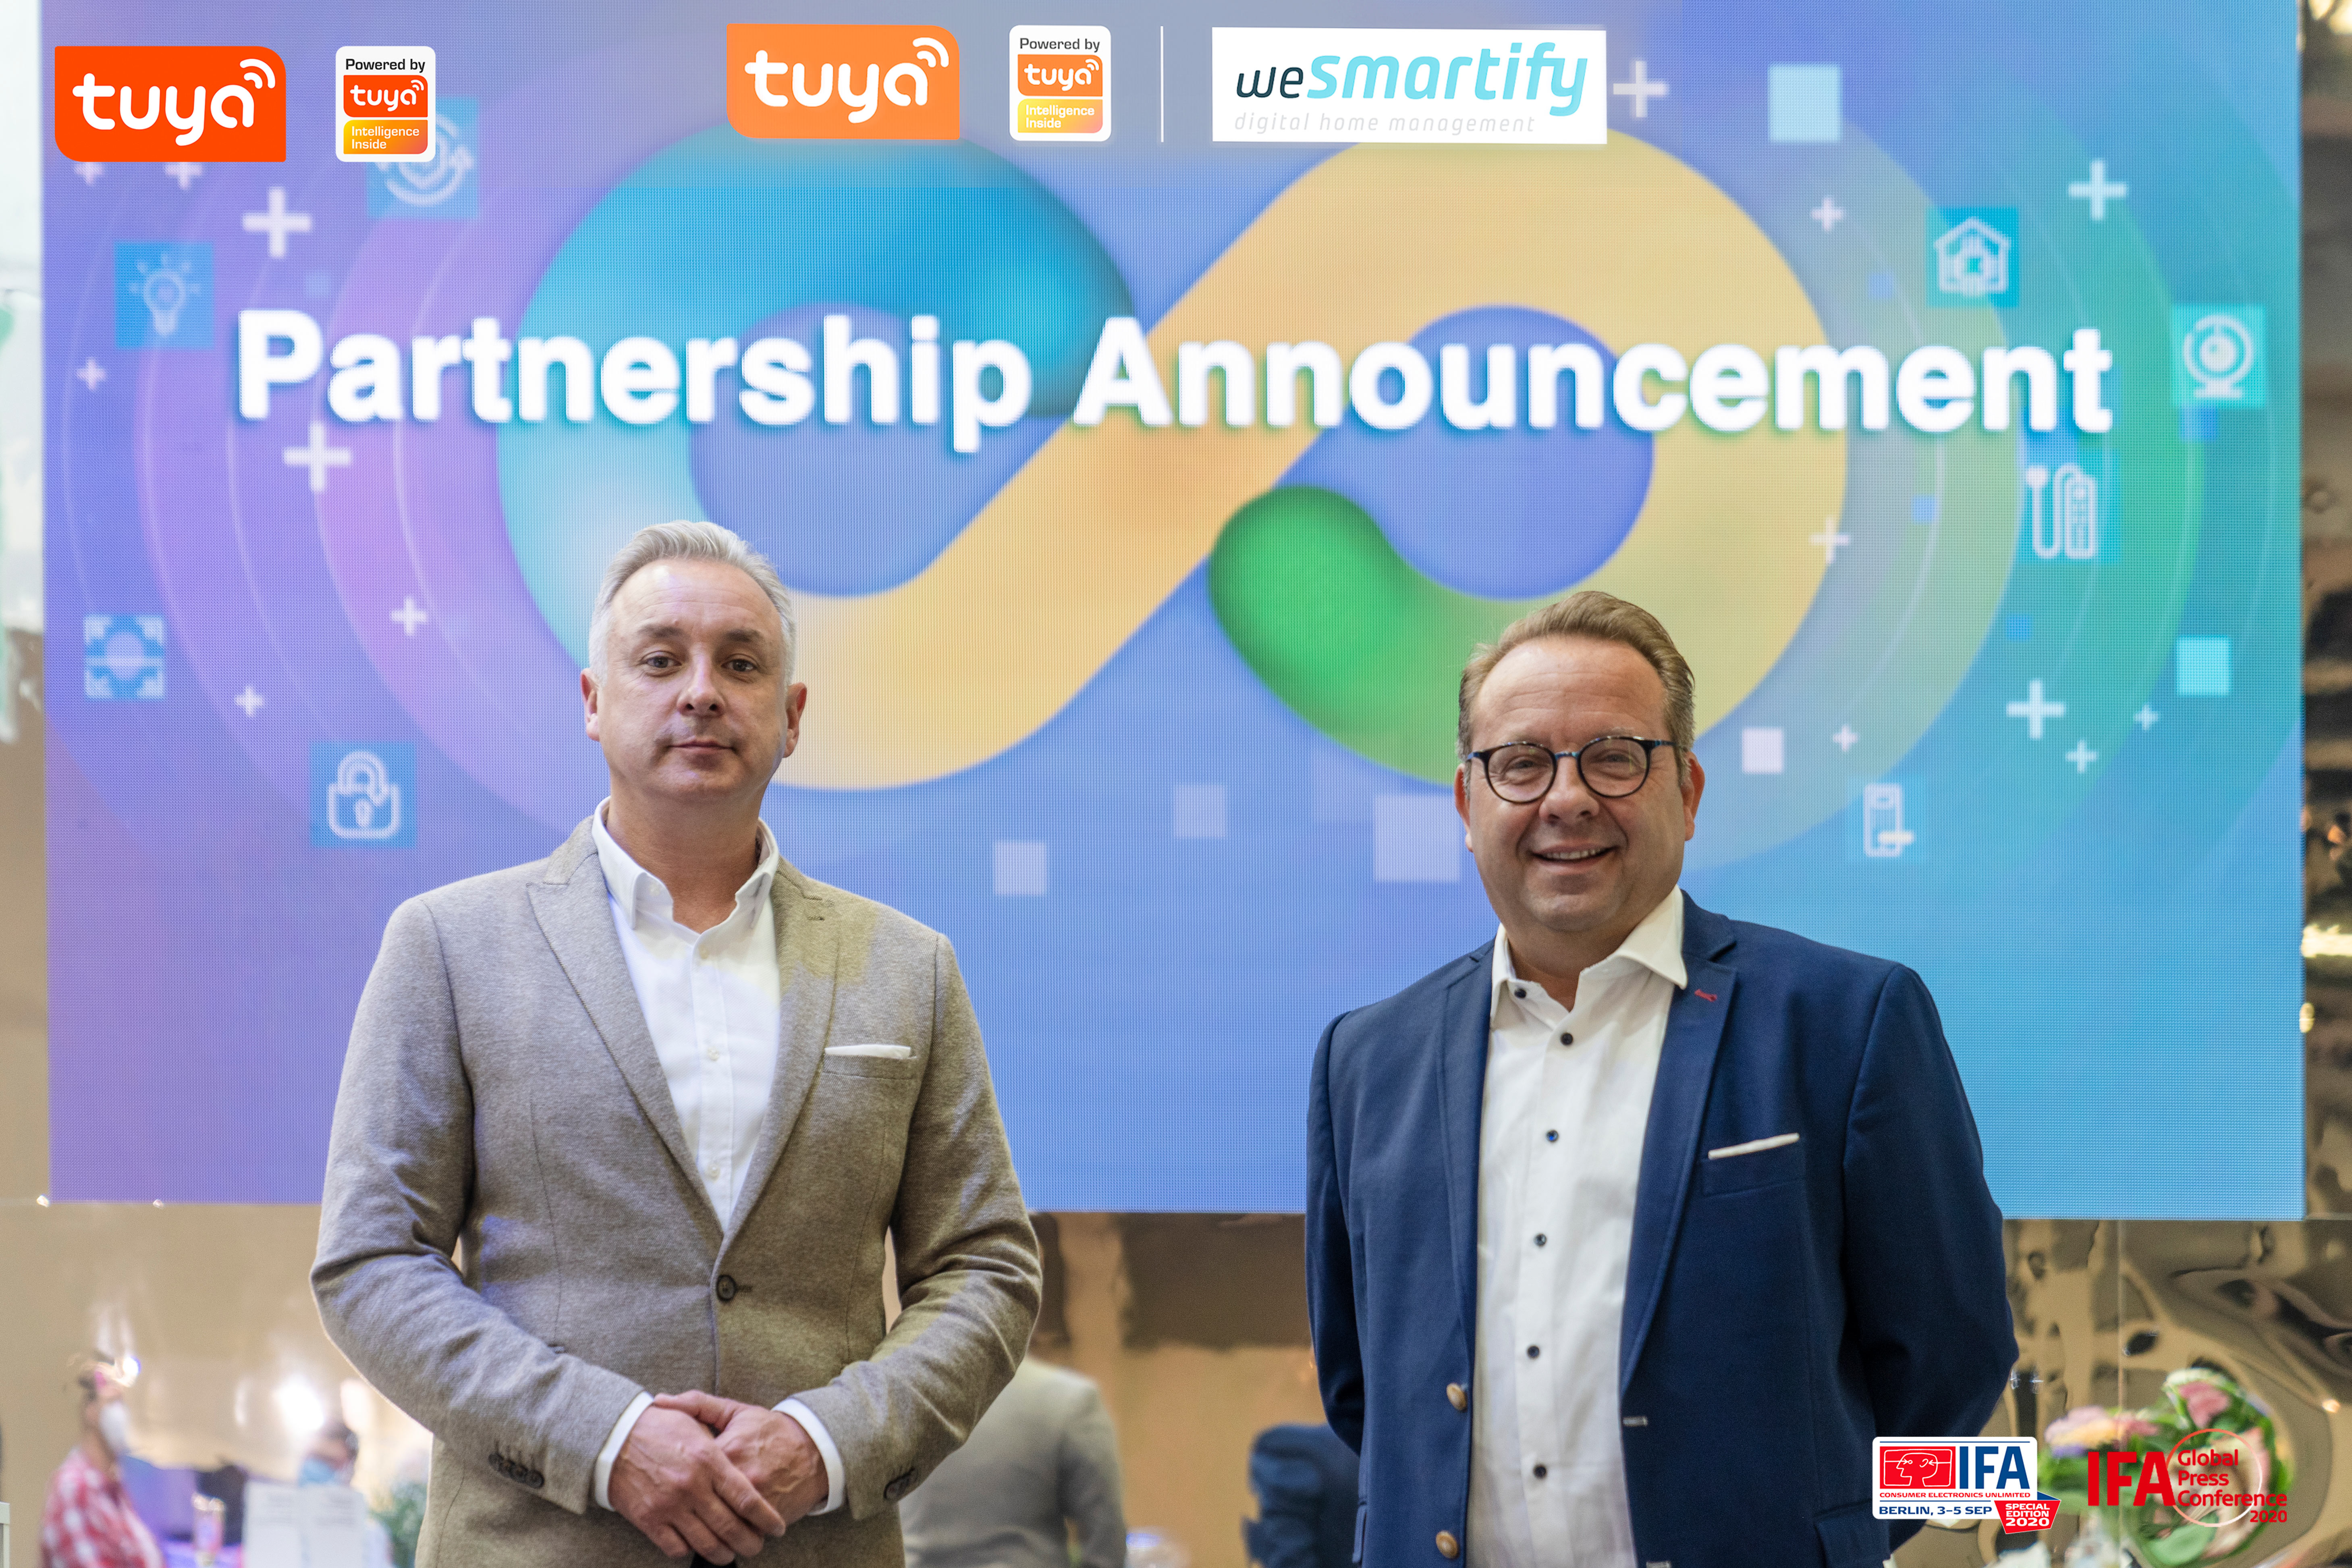 Sven Buschmann, Head of Business Development from Tuya Germany and Ralf Klar, CEO of Wesmartify